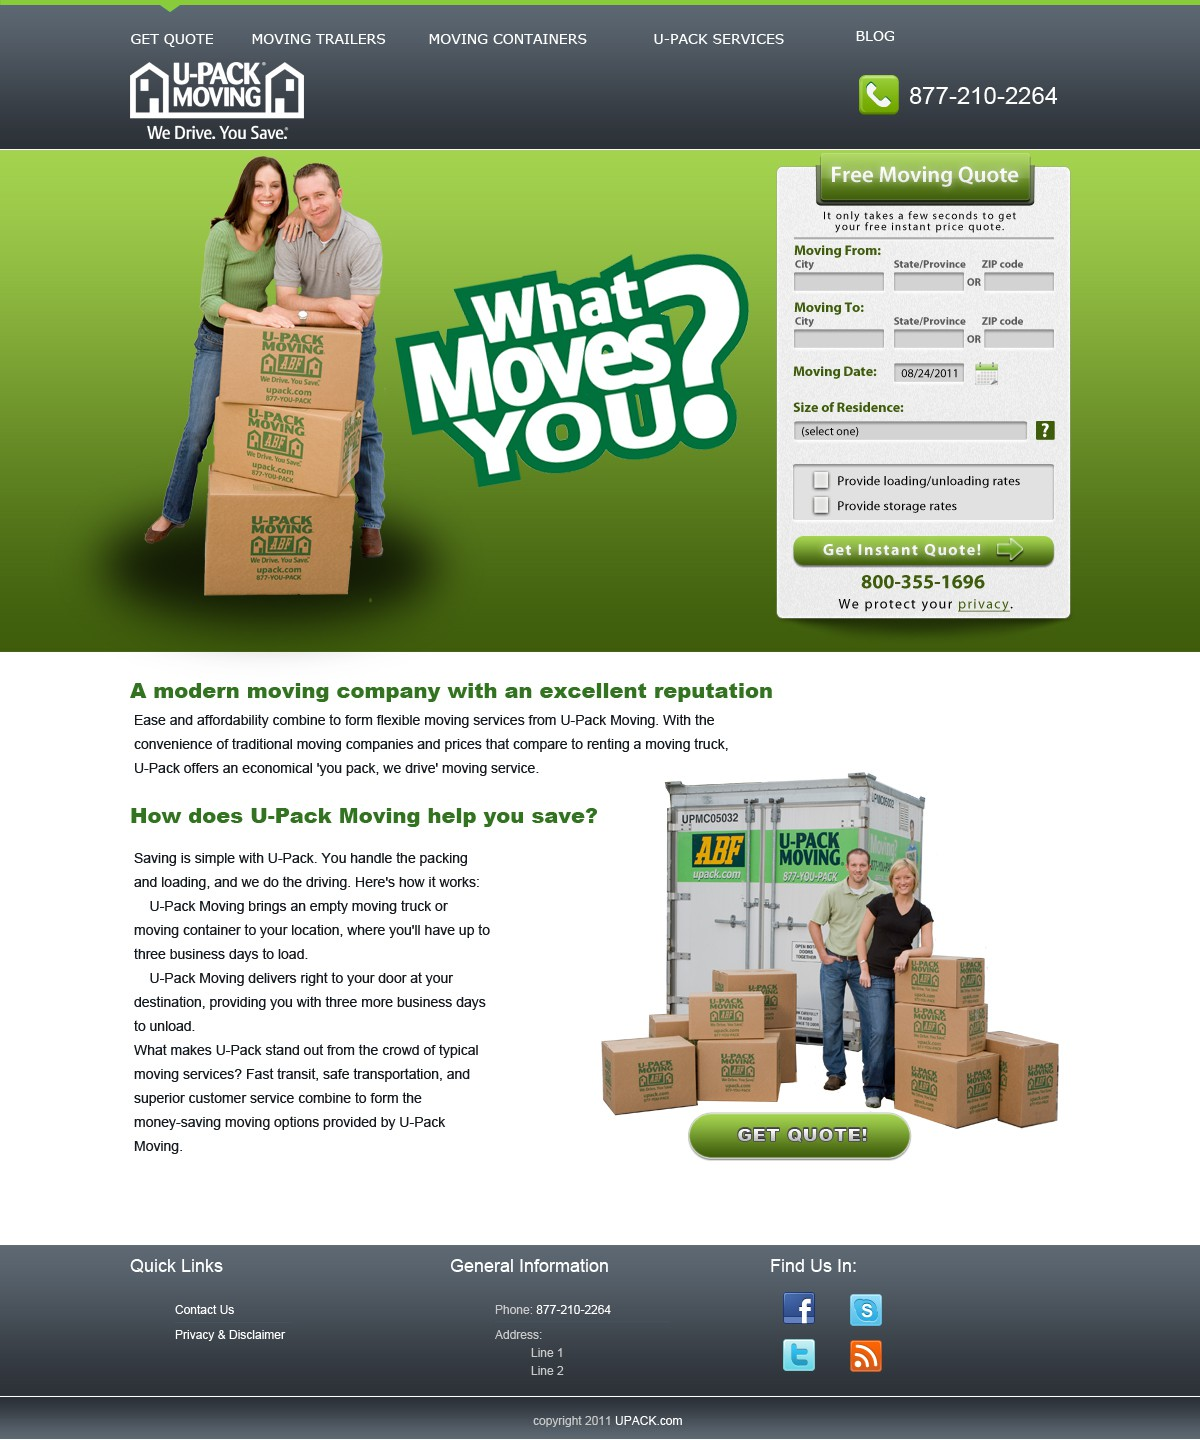 U-Pack Moving needs a new website design